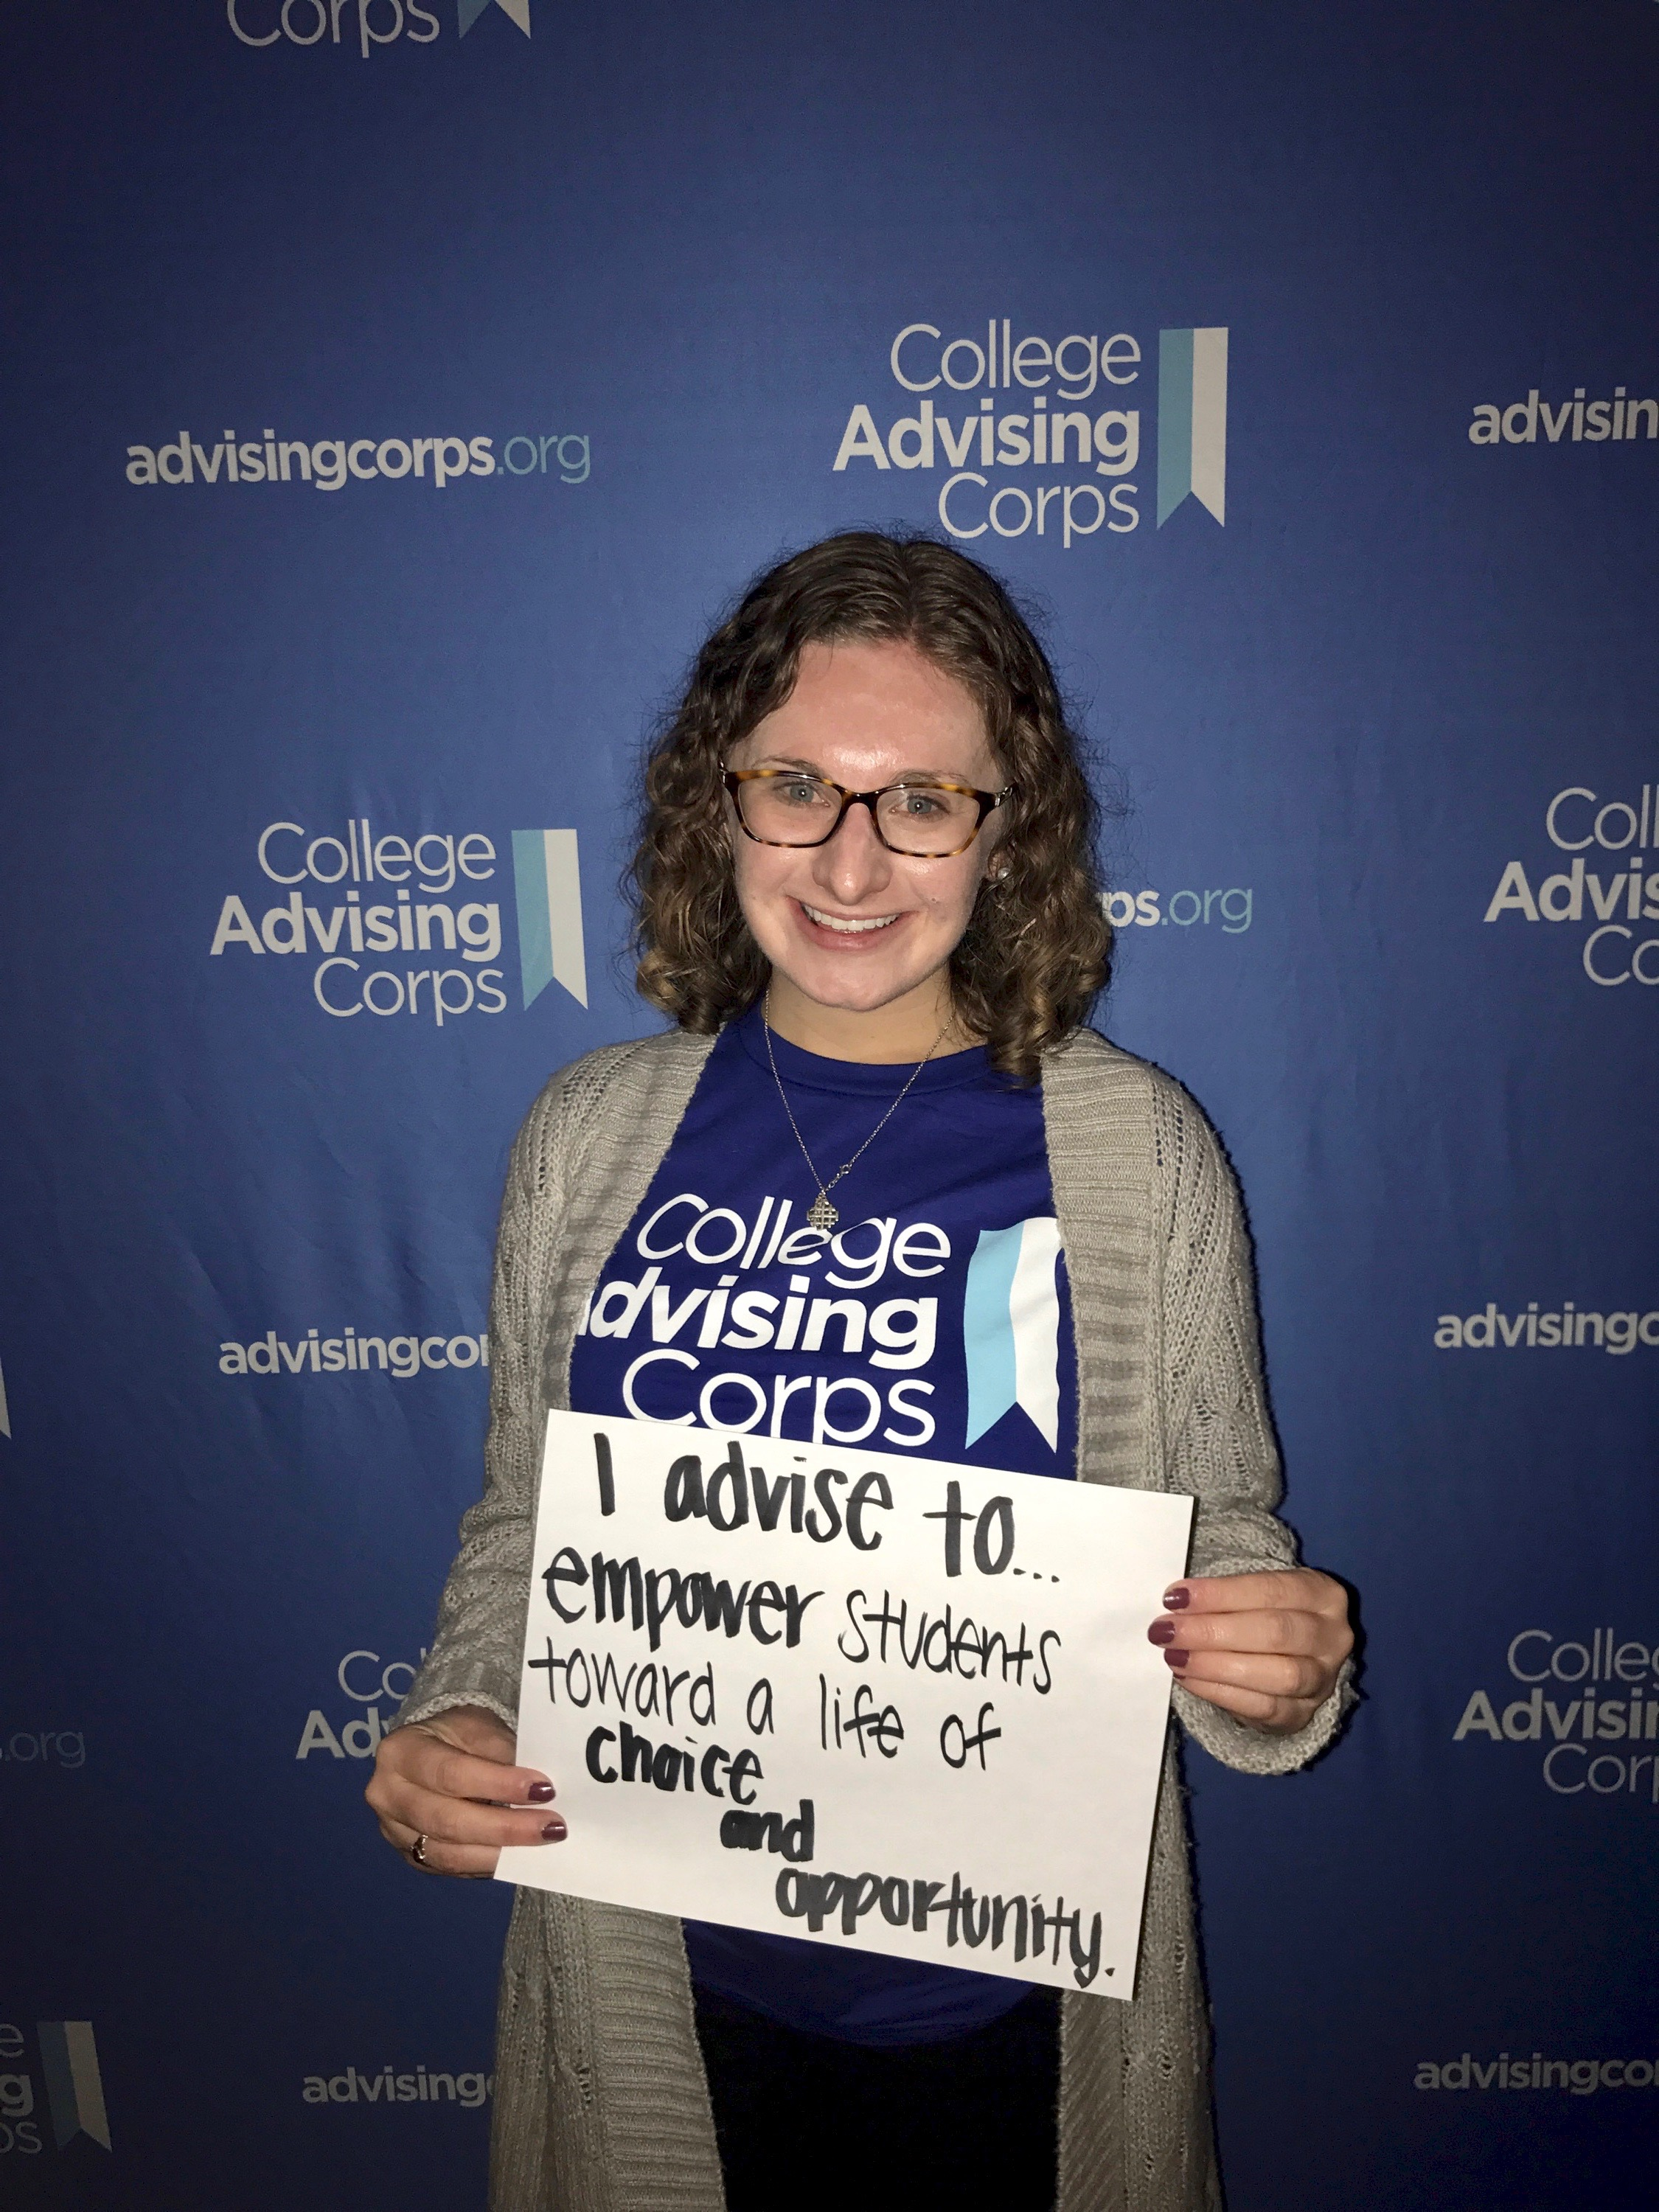 """Picture of Mary Kate Kelly with a sign about why she love being a college adviser. The sign reads """"I advise to empower others toward a life of choice and opportunity."""""""